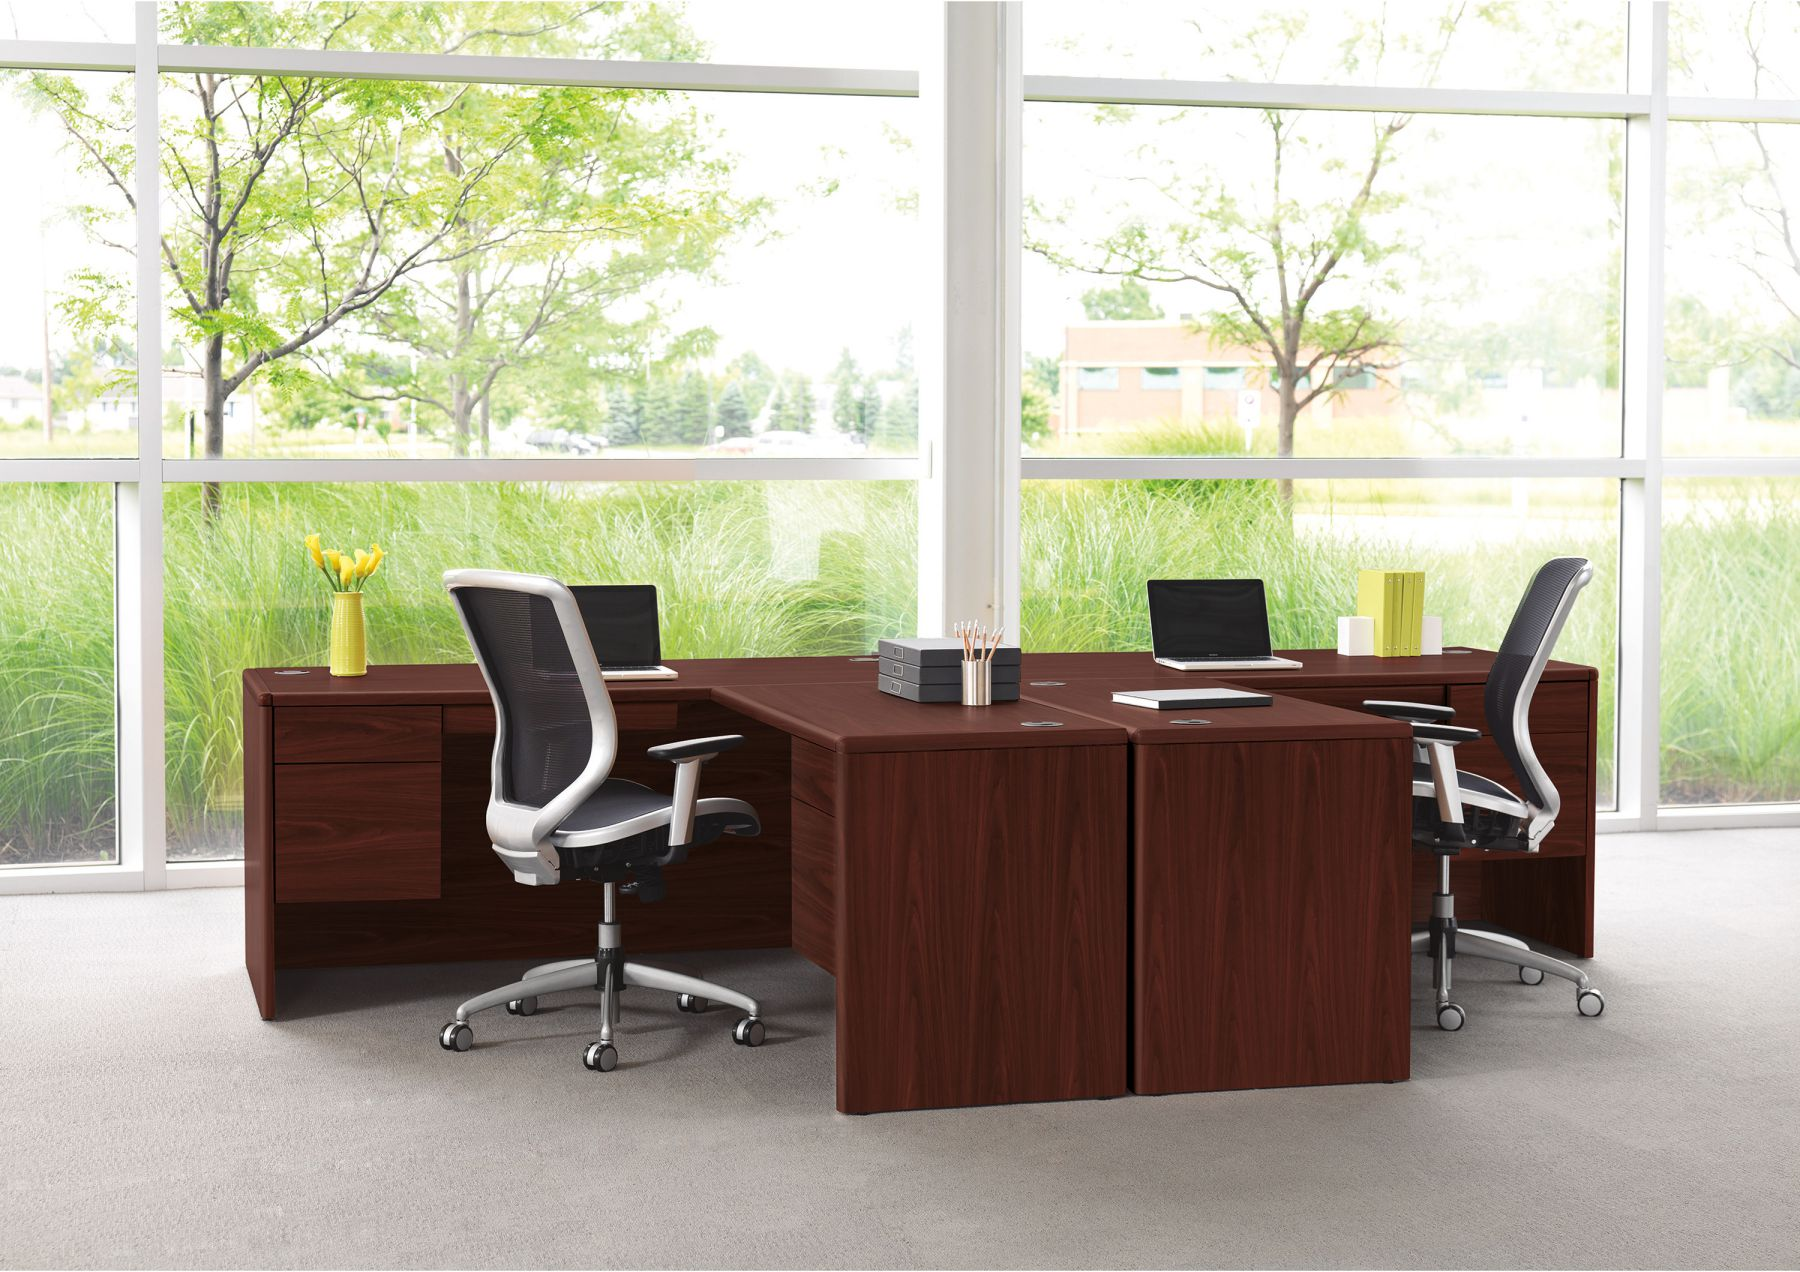 decorating office for of a stores workspace savannah architect executive table full ga beautiful ideas vip excellent used cool furniture home design in size solutions